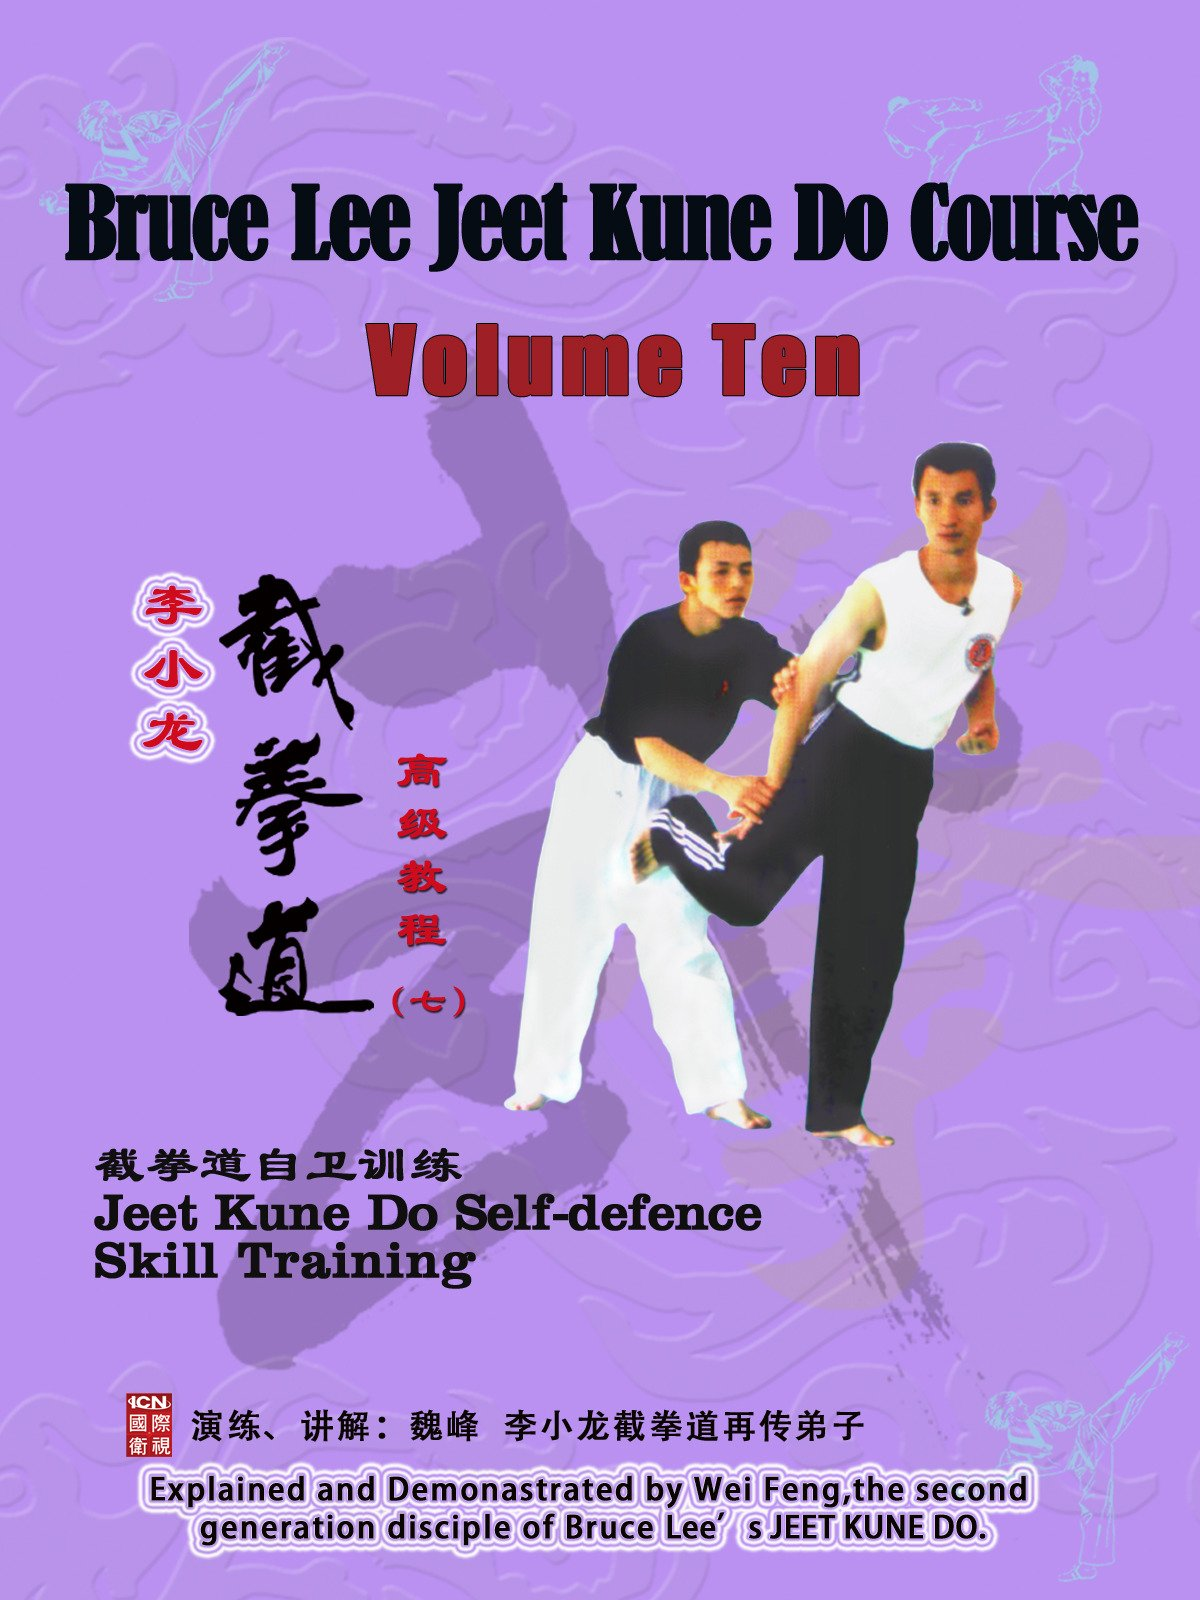 Bruce Lee Jeet Kune Do Course Volume Ten